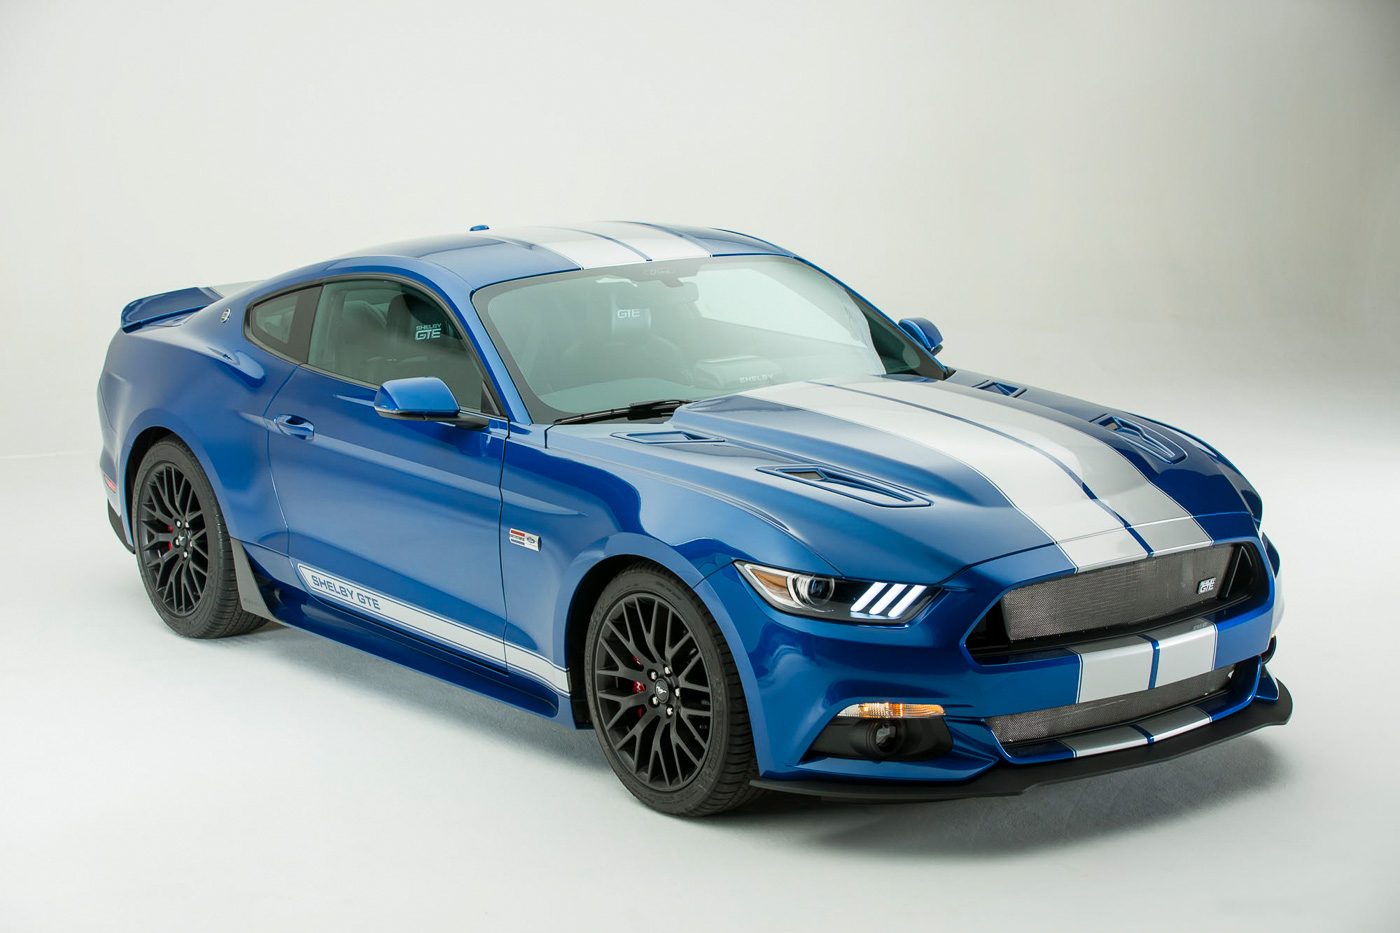 New & Powerful 2017 Shelby Mustang GTE is Challenging his Rivals!